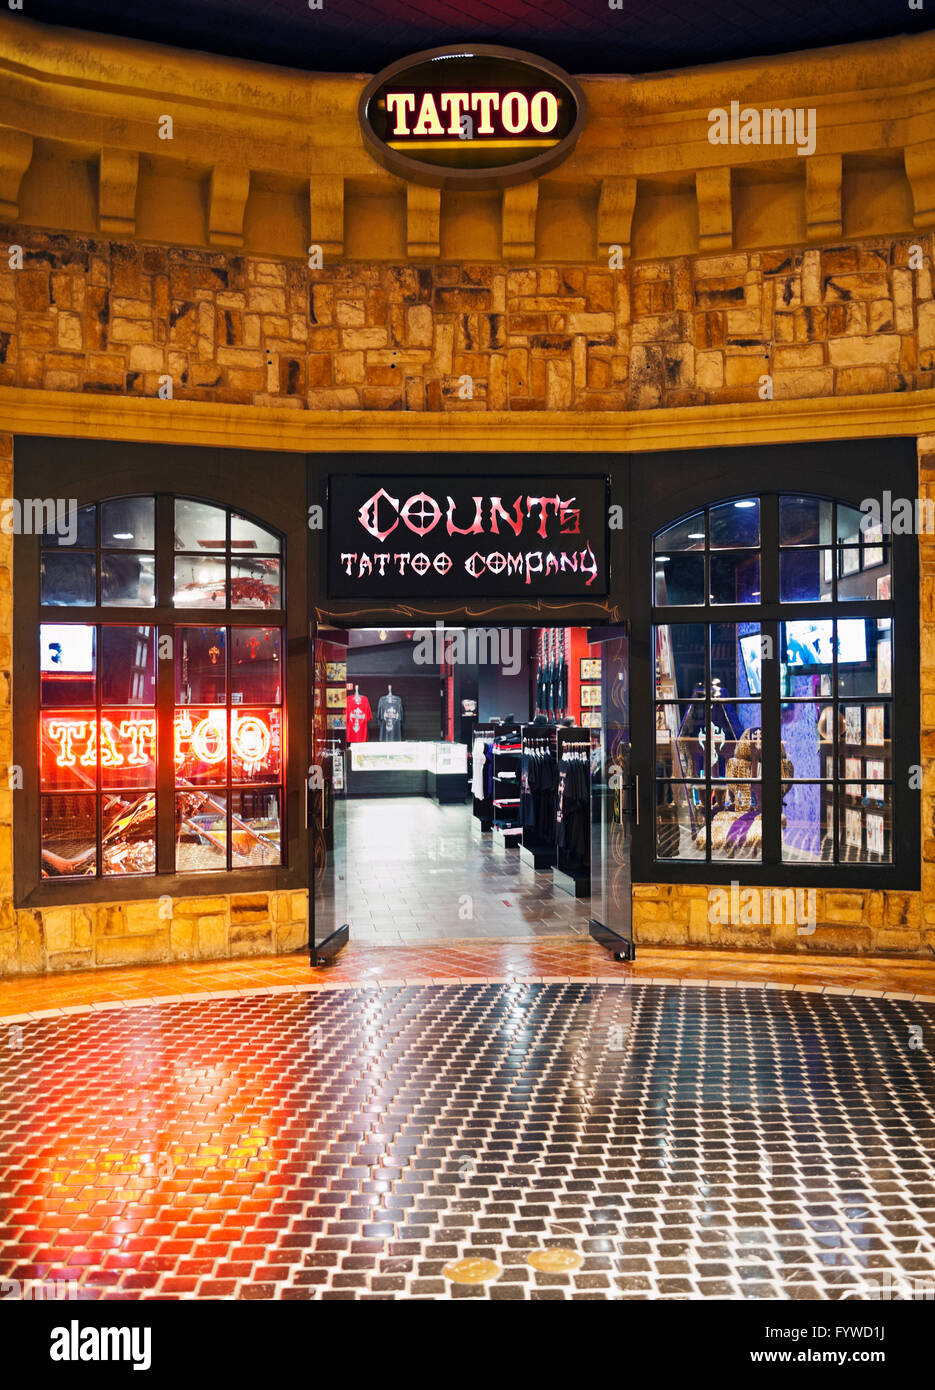 The Count S Tattoo Company Inside Of The Rio Hotel And Casino In Las